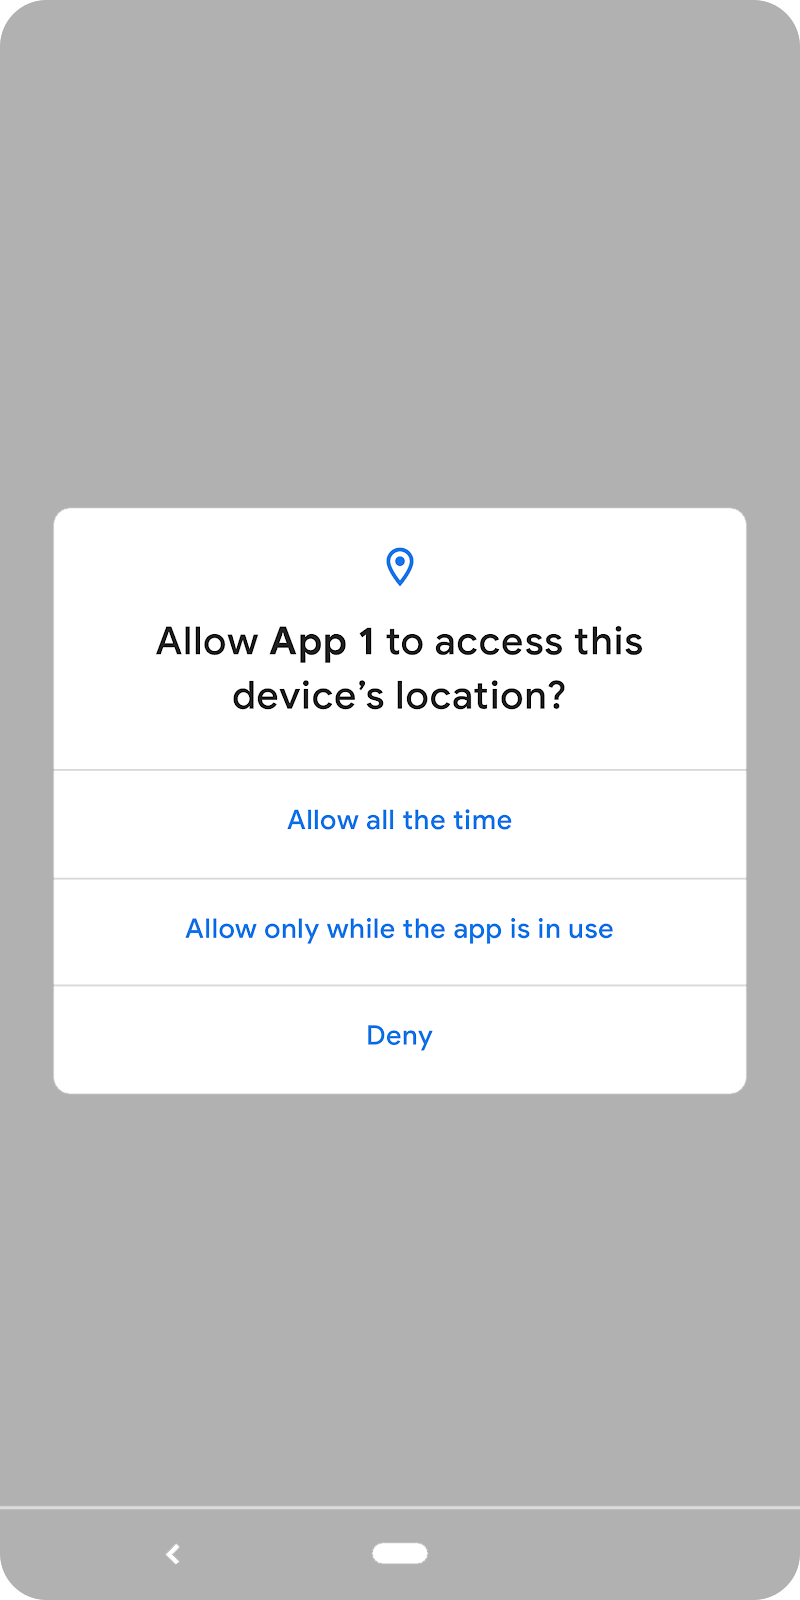 notification displaying: Allow app 1 to access the device's location.